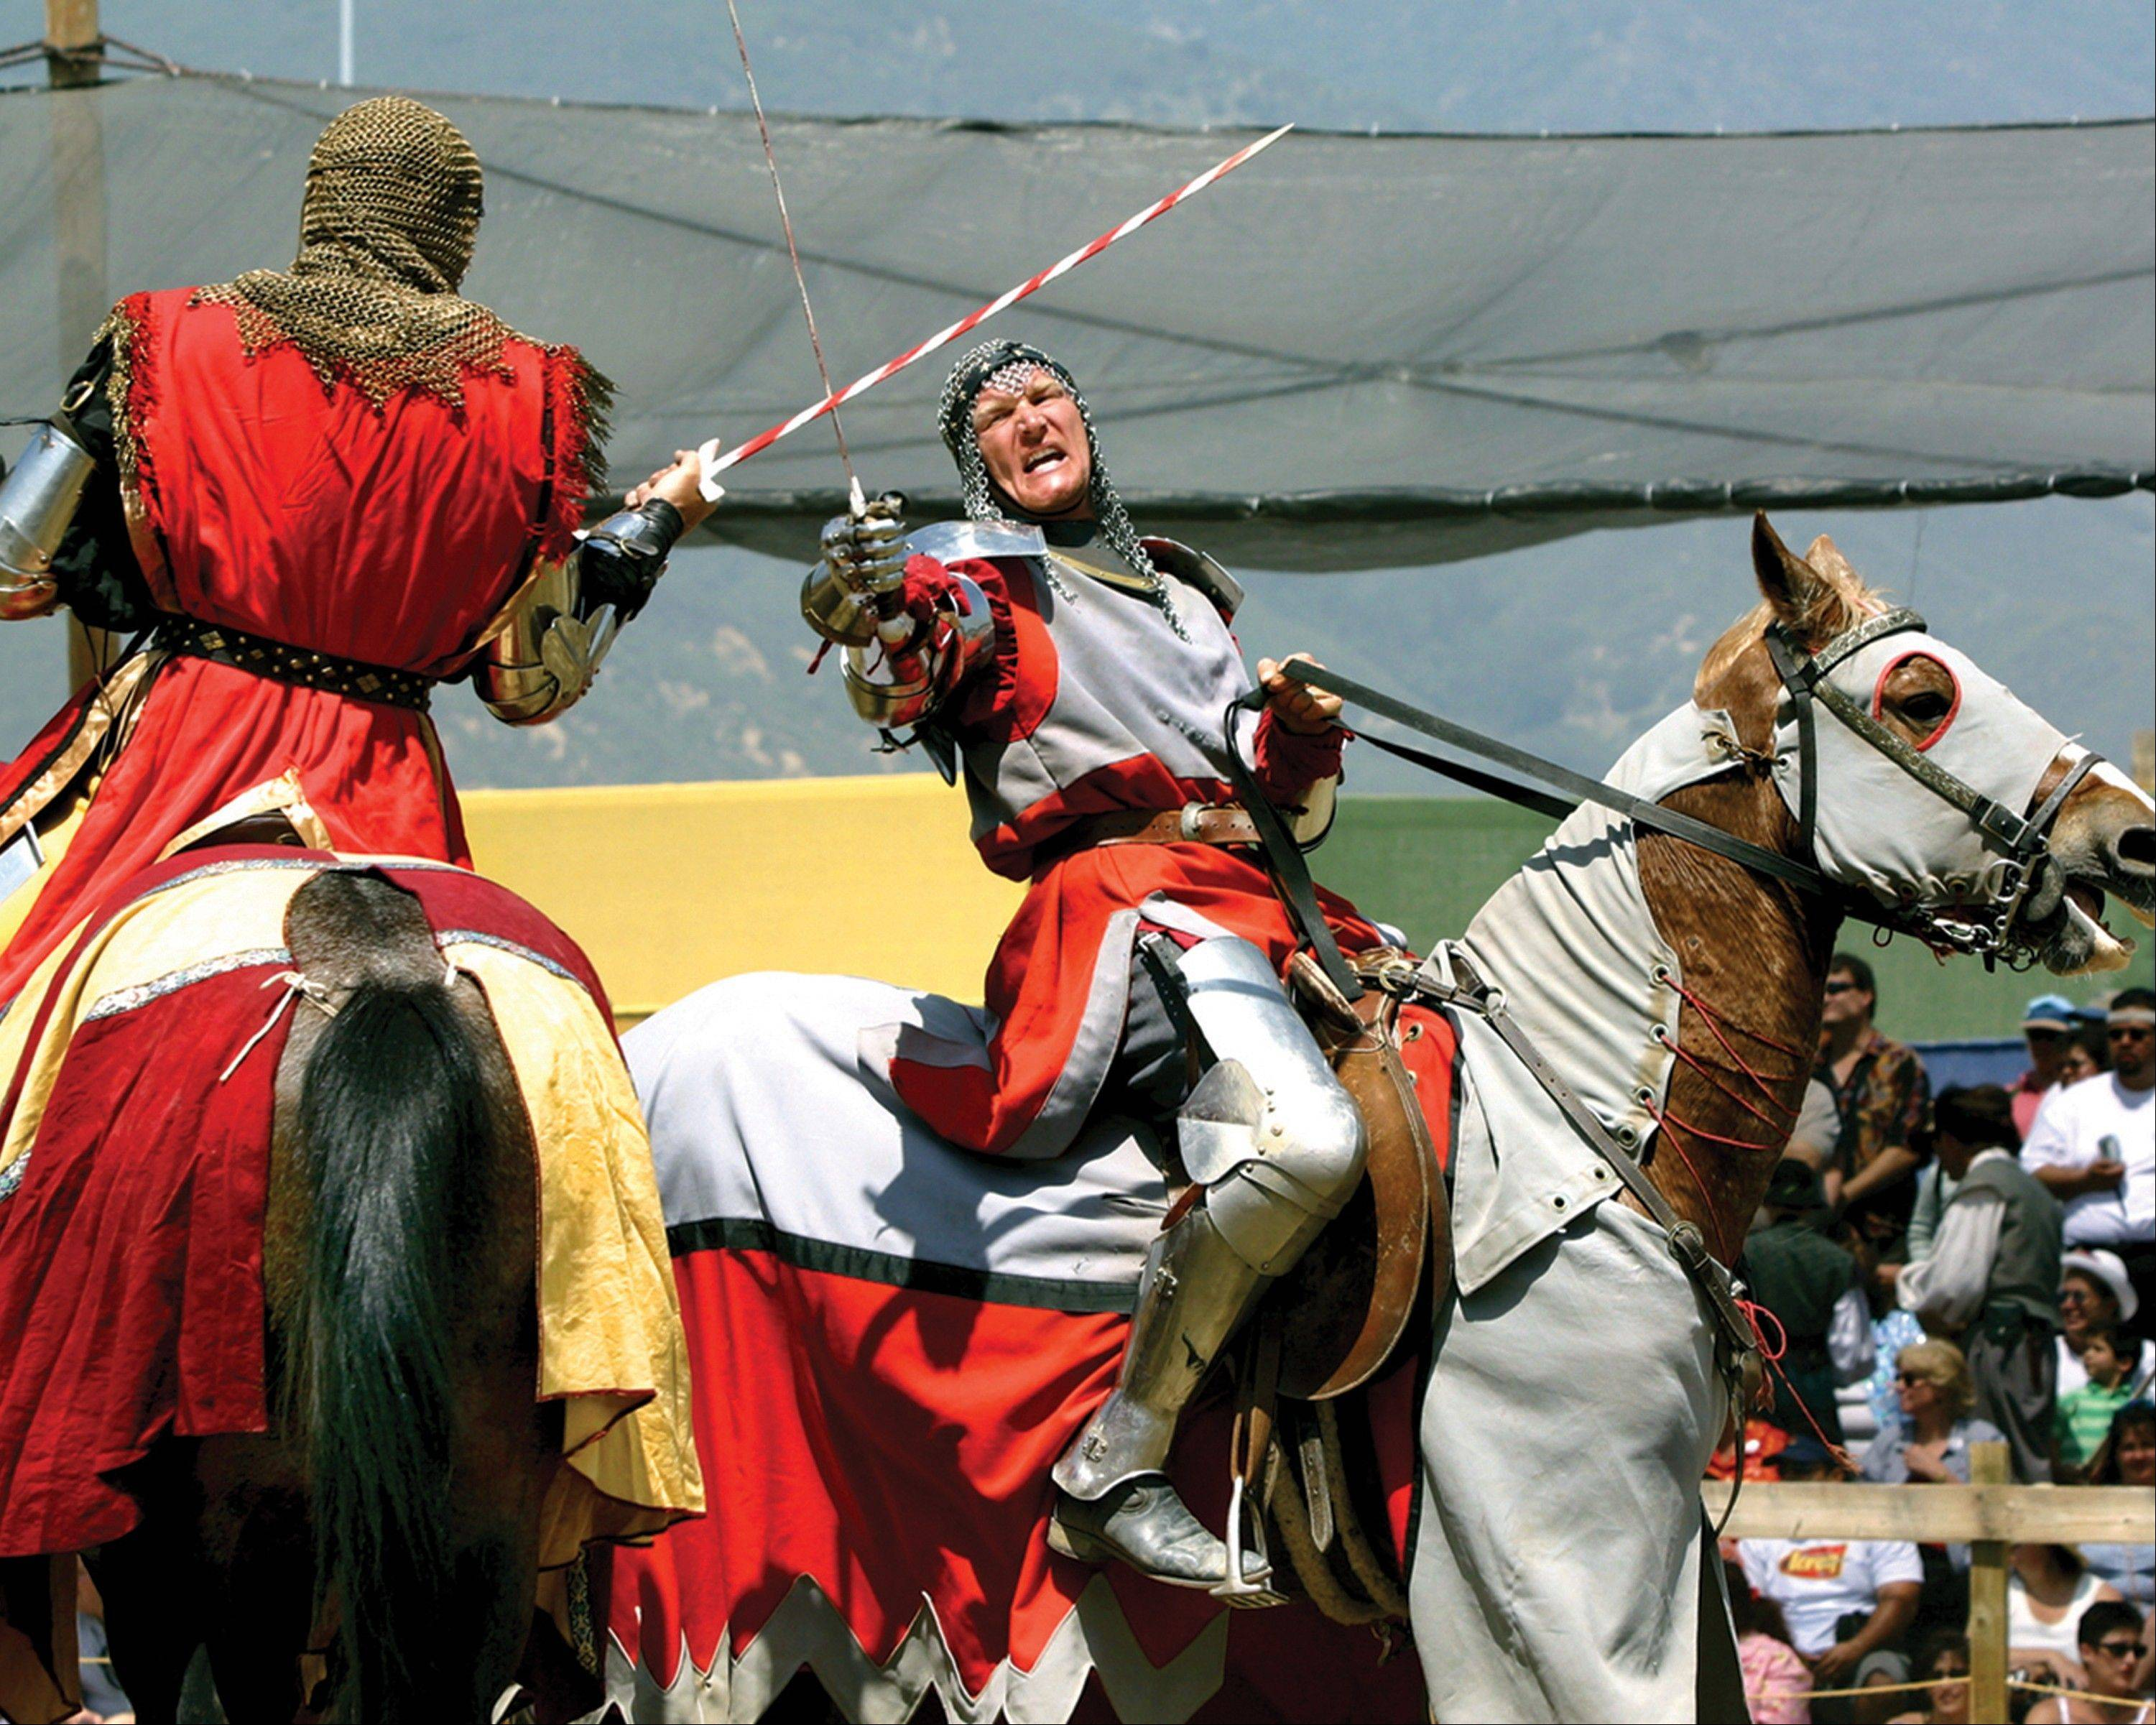 The Bristol Renaissance Faire opens for 2013 summer season starting Saturday, July 6.